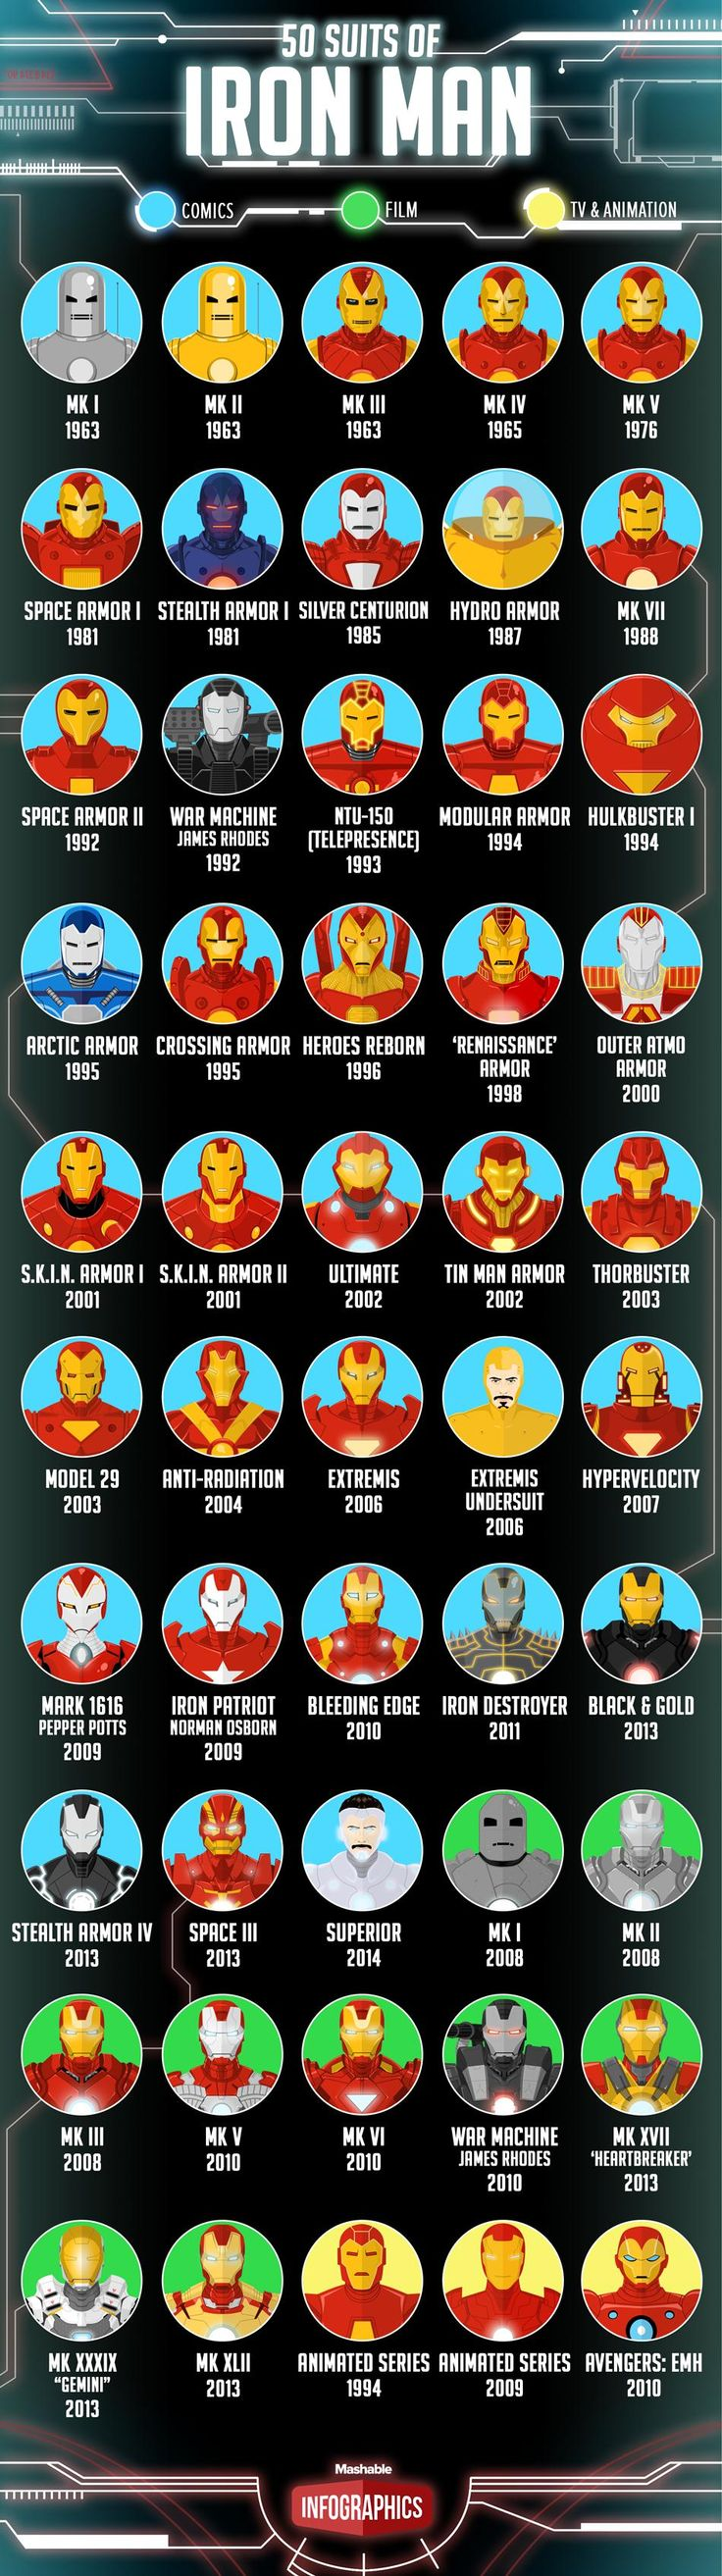 Here's how Iron Man has changed over the years.